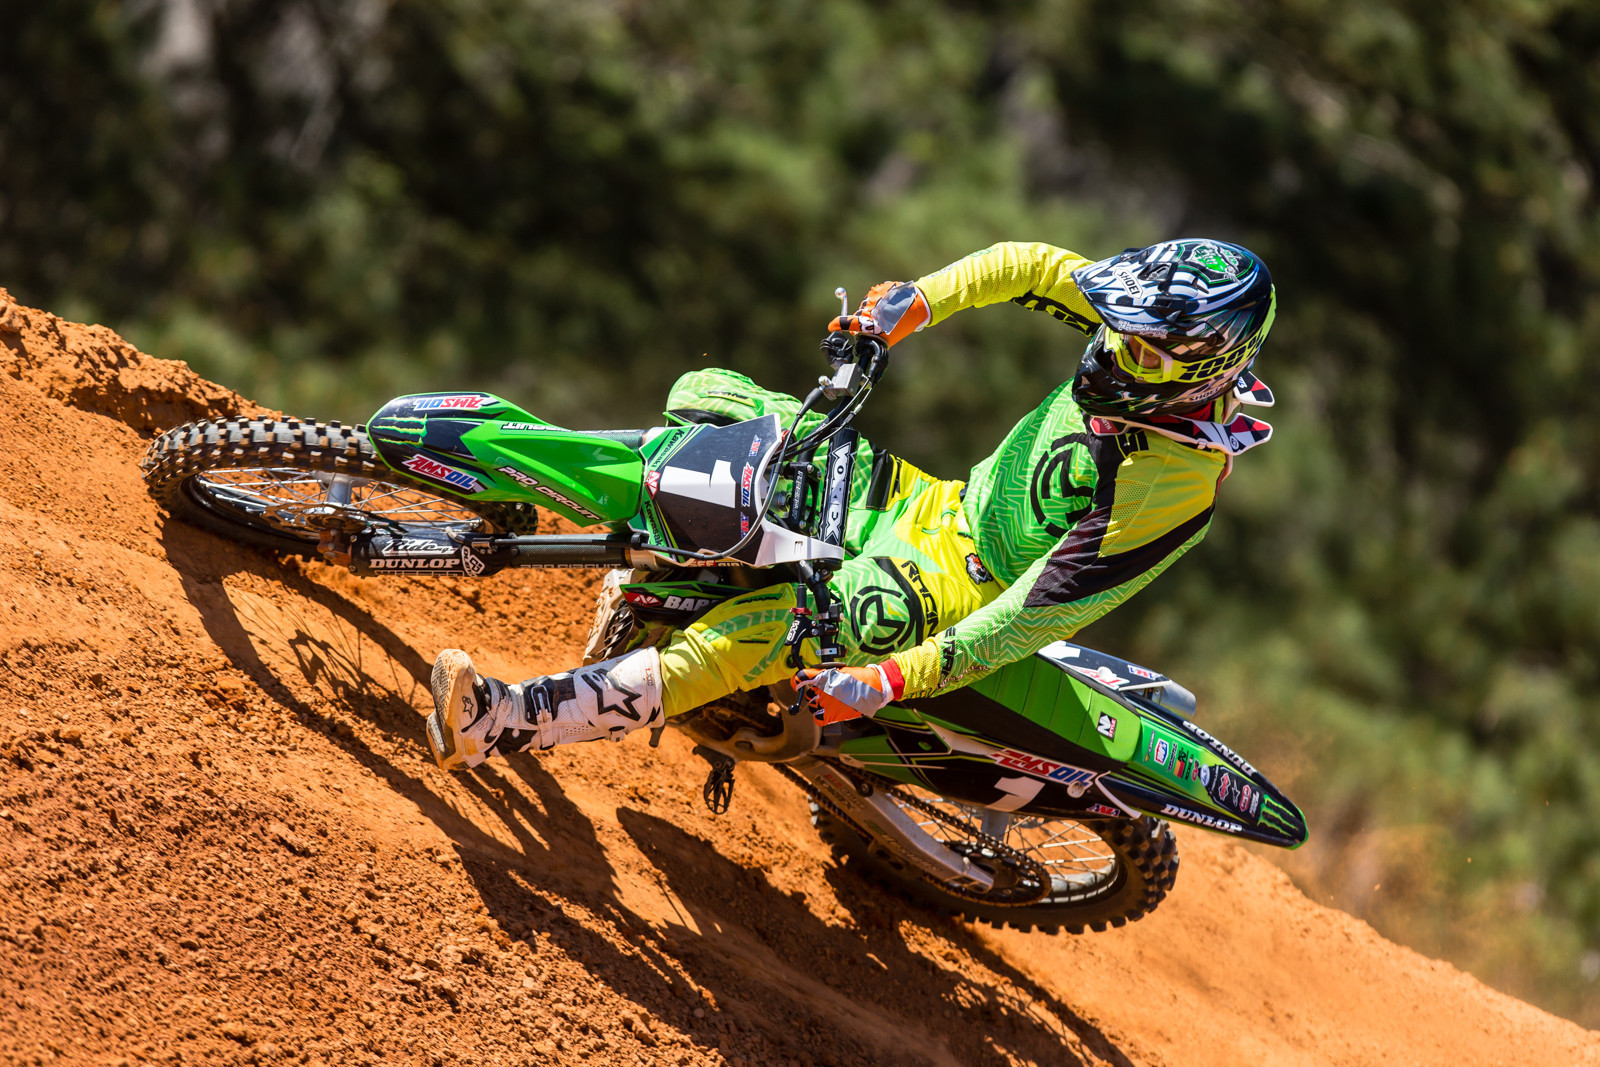 Gavin Faith Signs Contract Extension with Team Babbitt's Monster Energy Kawasaki